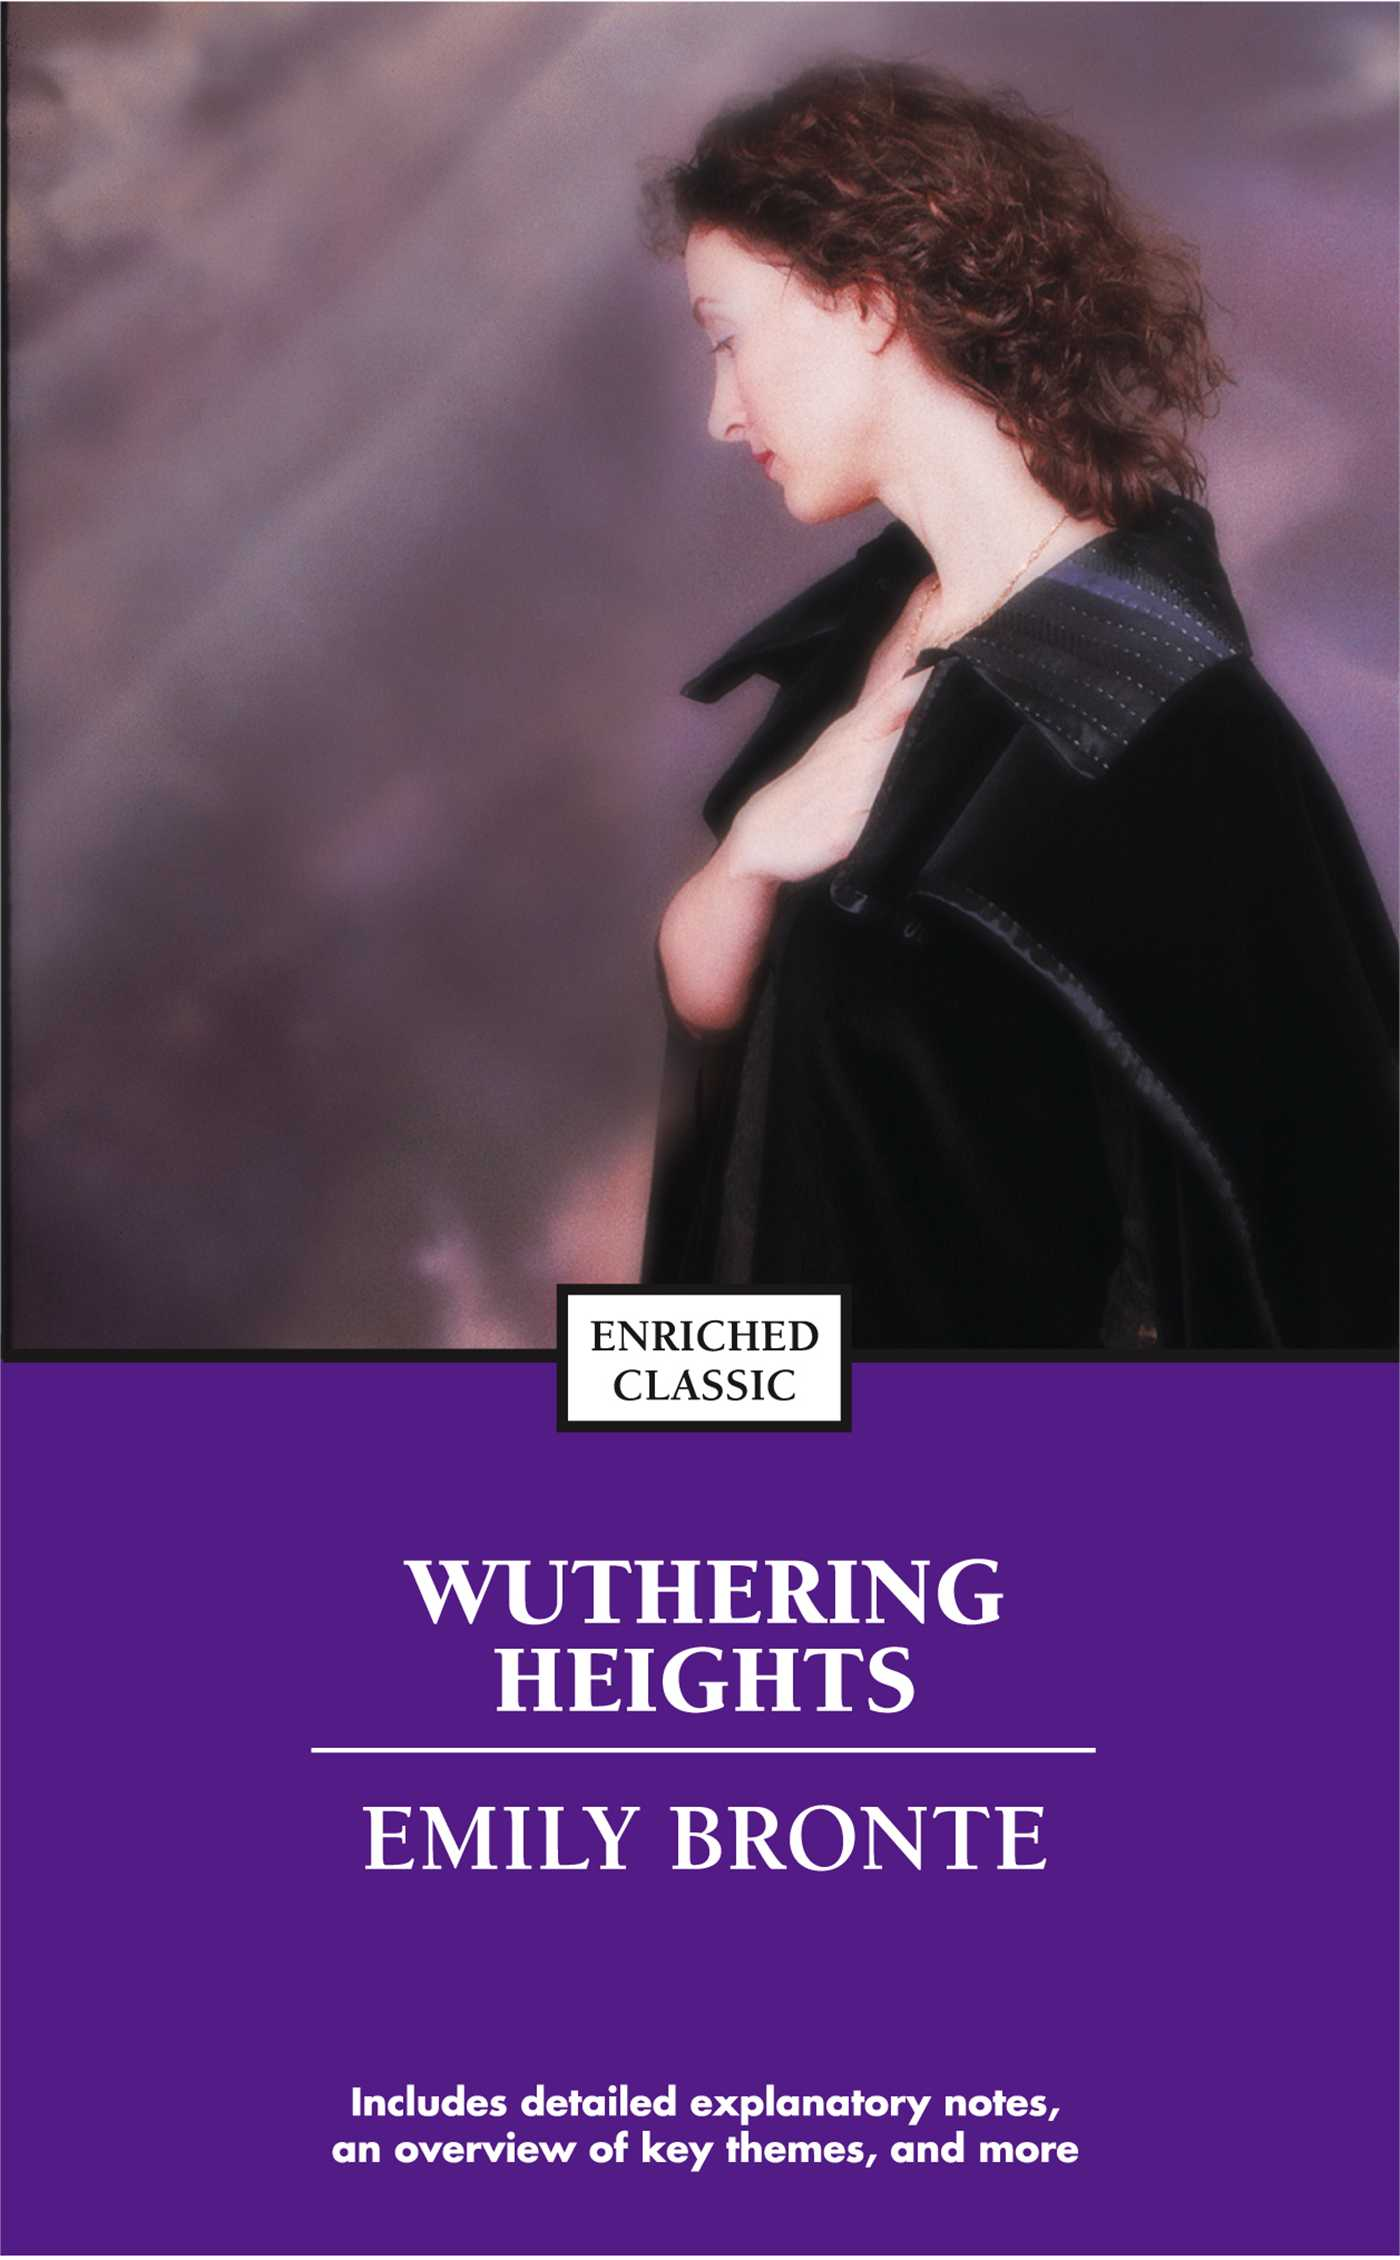 the life of emily bronte through wuthering heights Wuthering heights is a story written by emily bronte it is a story told through eyewitness account, lockwood and nelly dean where lockwood's was responsible for shaping the framework of the novel and nelly dean provides with the audiences the intricate recount of the personal lives of all.